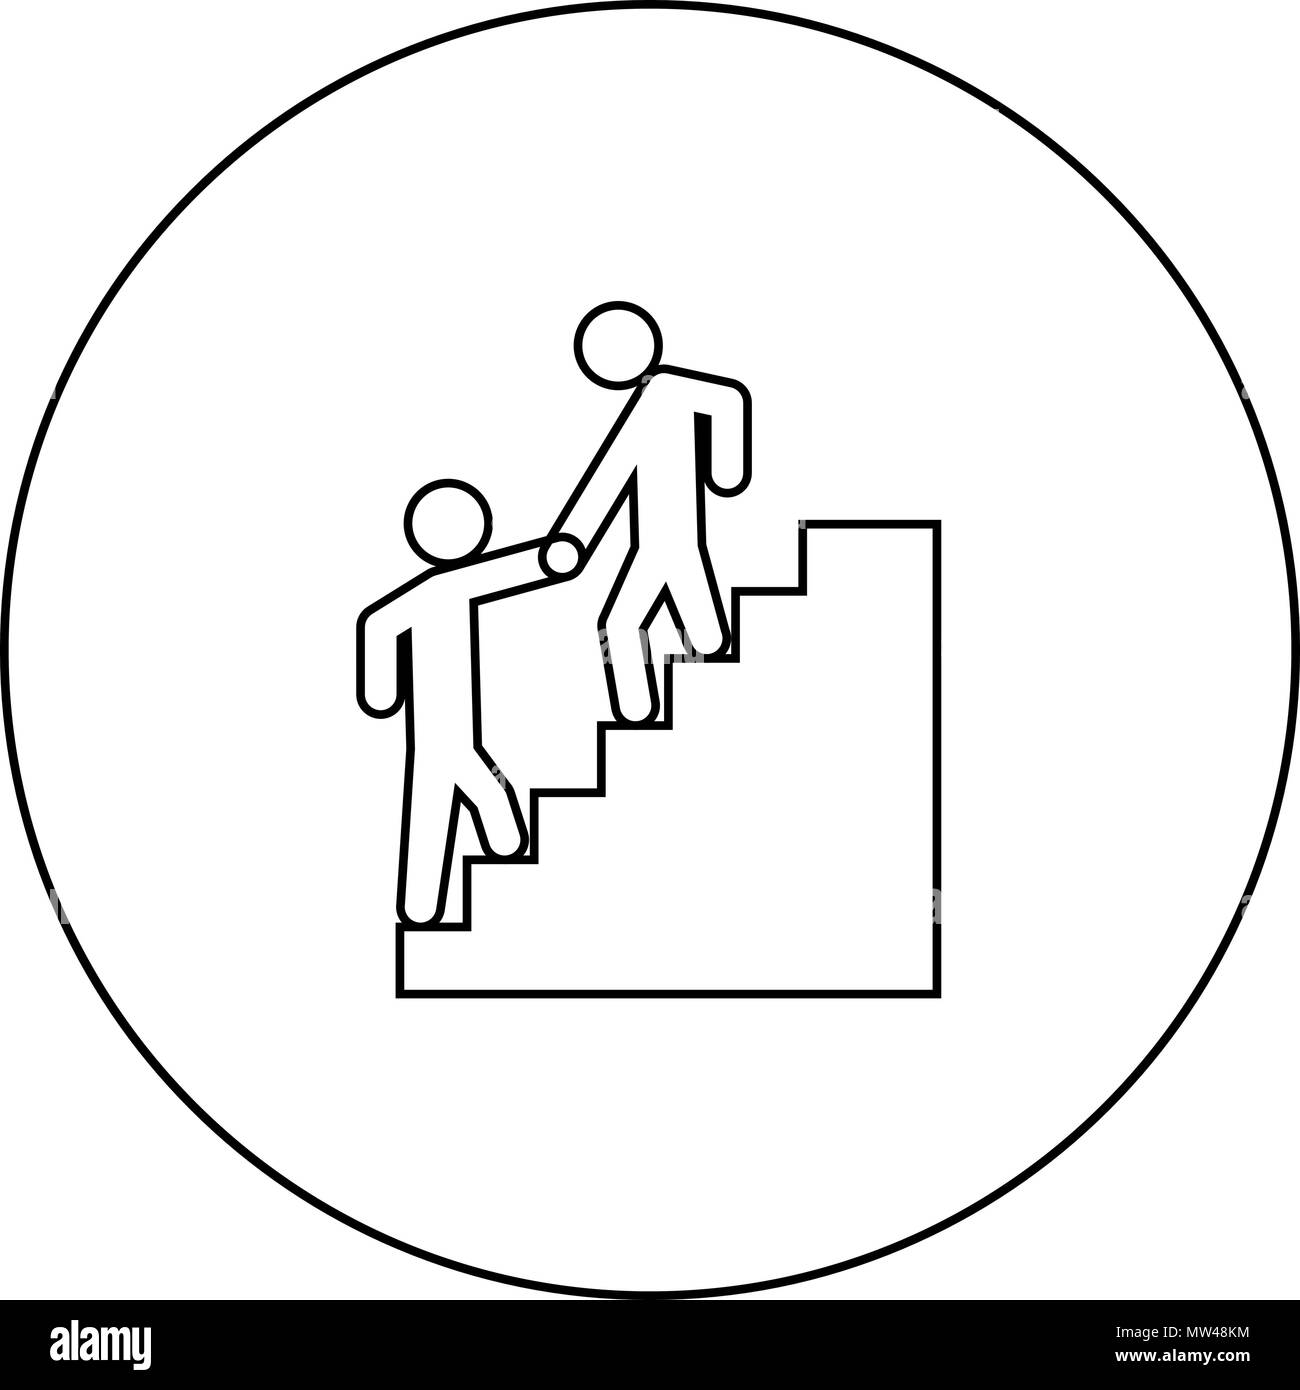 Man helping climb other man black icon in circle outline vector I isolated - Stock Vector